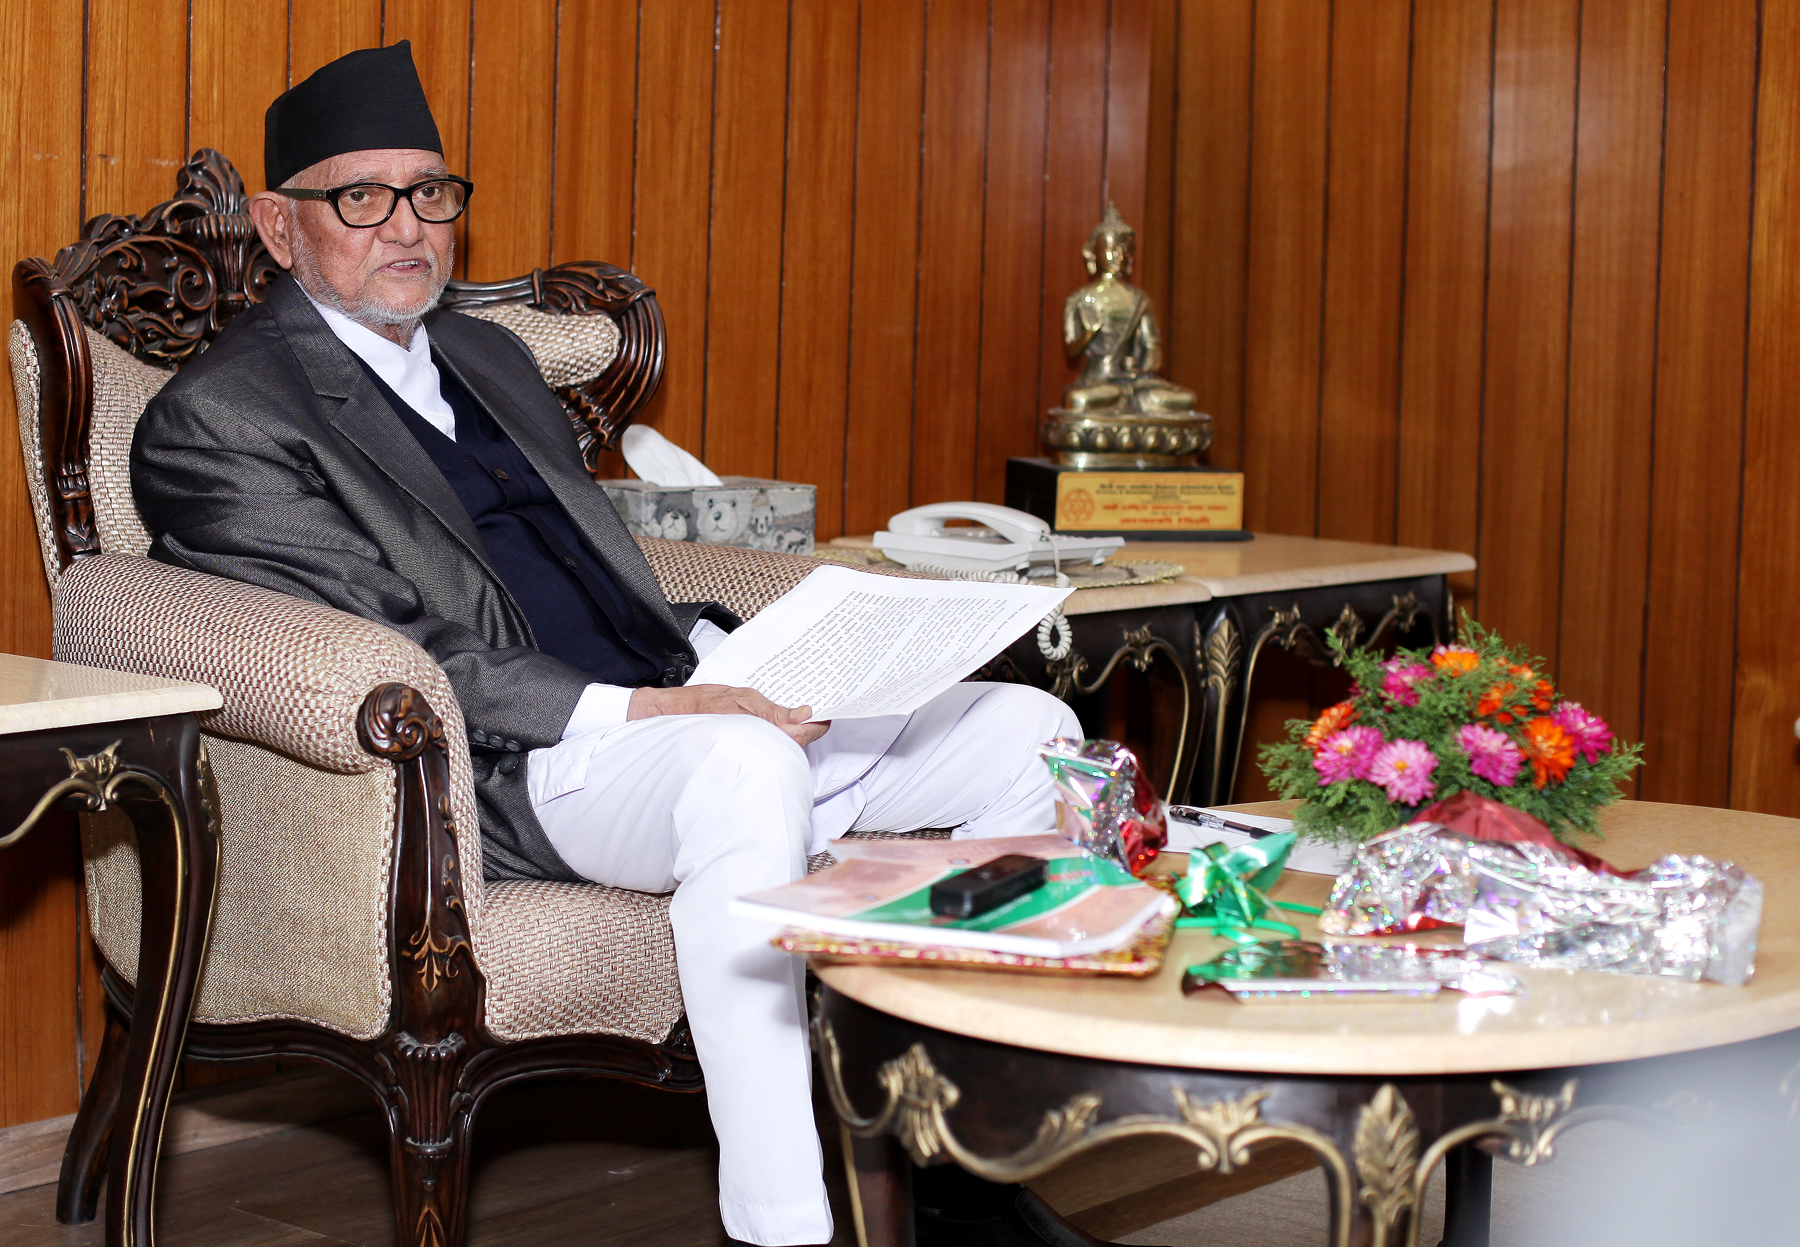 Prime Minister Sushil Koirala addresses a delegation team of National Vigilance Centre during a meeting held on Wednesday at PM's Official Residence, Baluwatar, Kathmandu. Photo: Kumar Shrestha, RSS